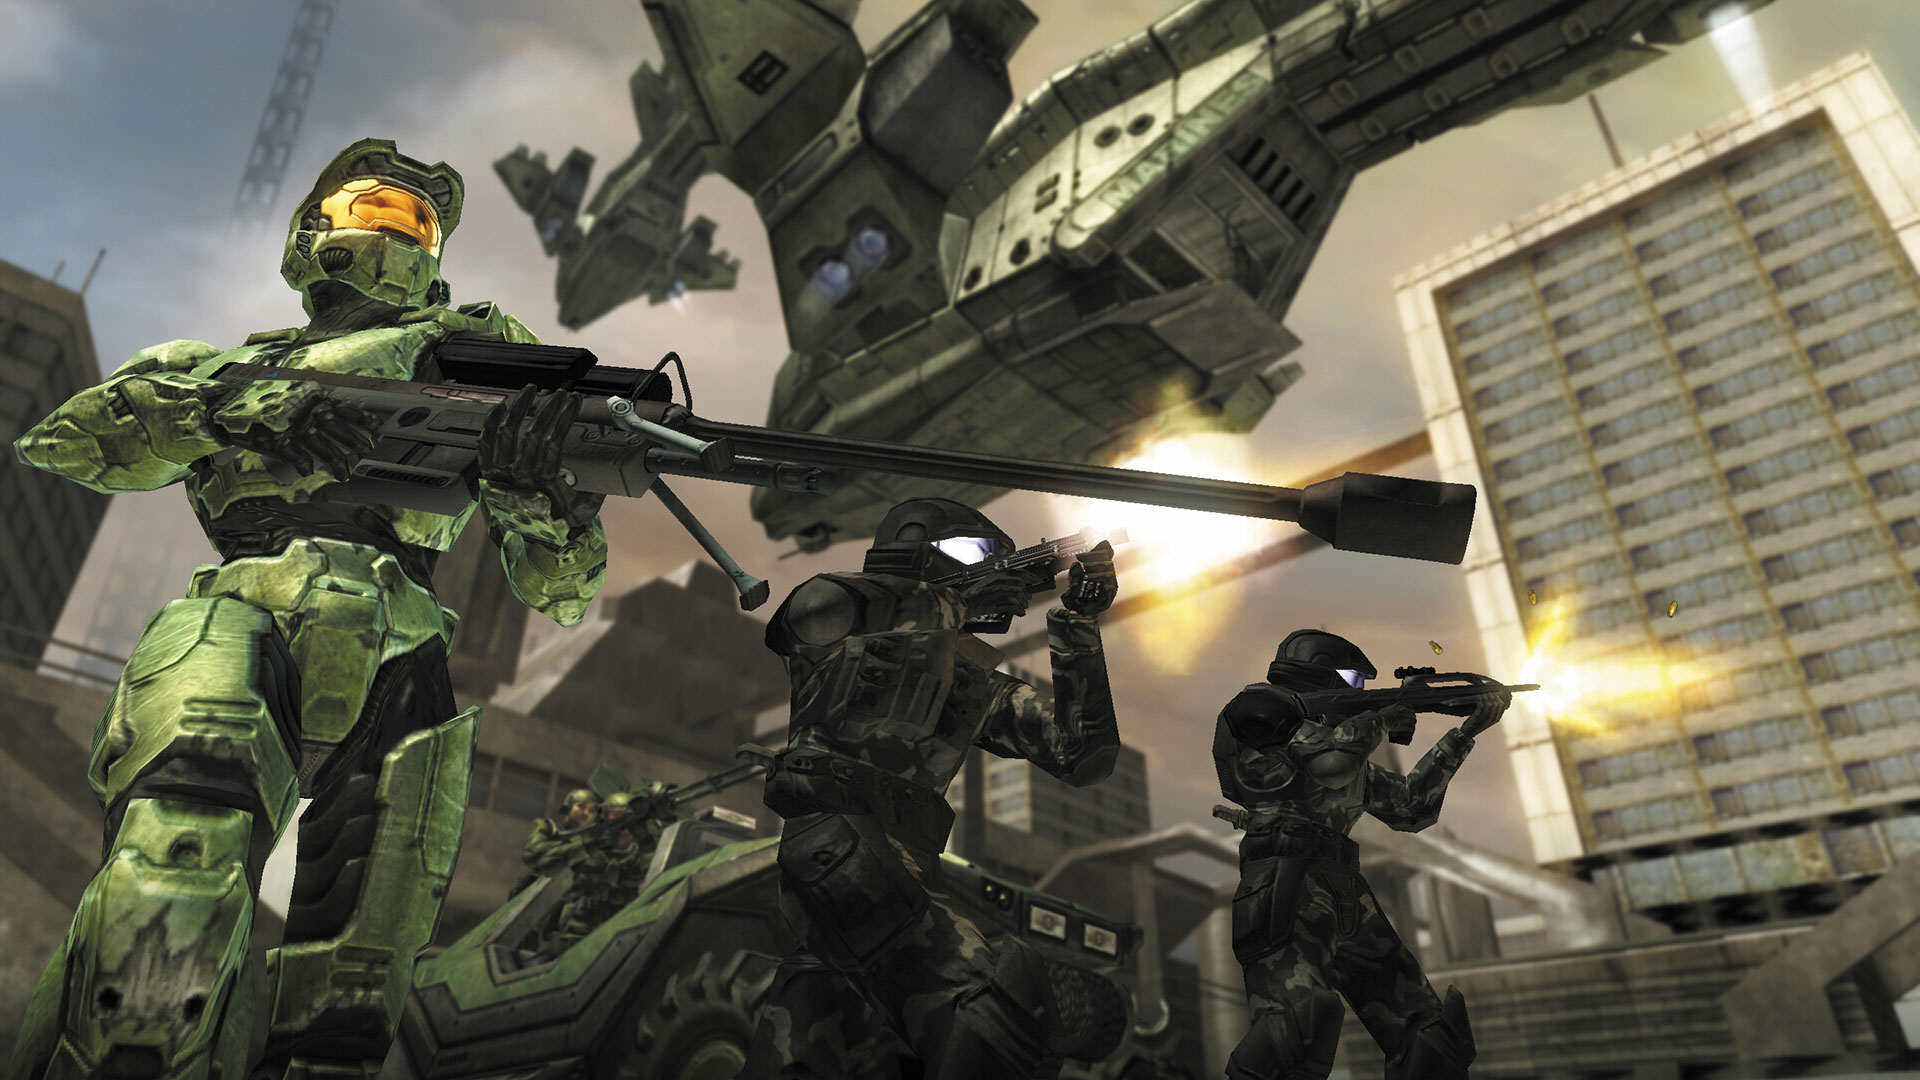 Halo 2s Ending Was Originally Very Different h2 003 a3d239a059794b3aaf798d2c82f21405